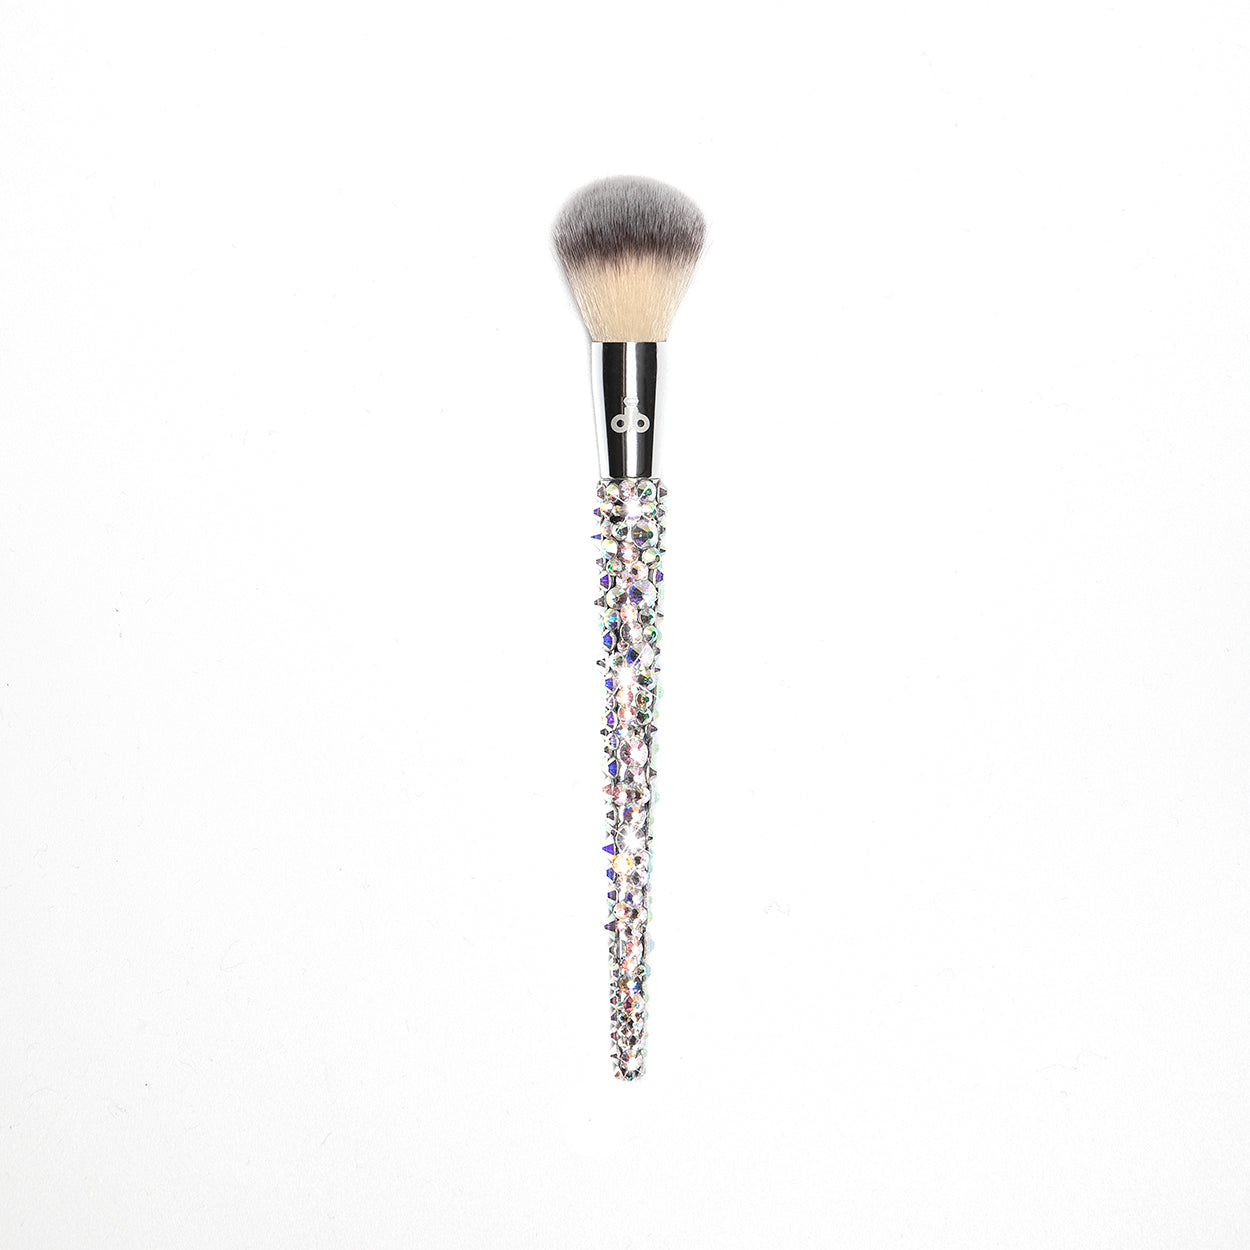 F5 - Highlight Brush